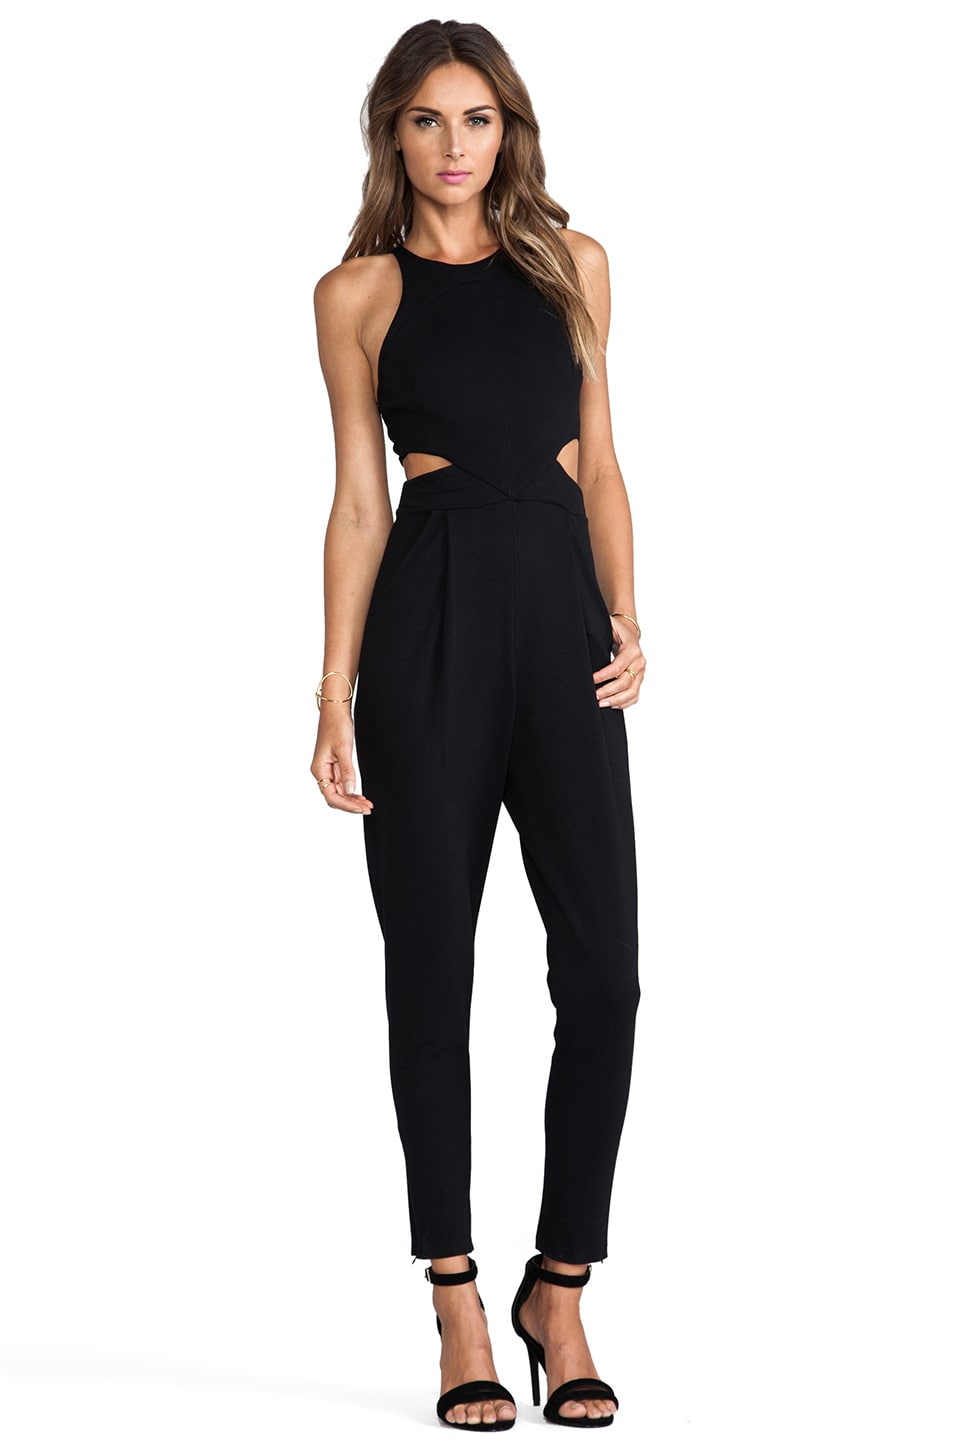 Hunter Bell Katie Jumpsuit in Black